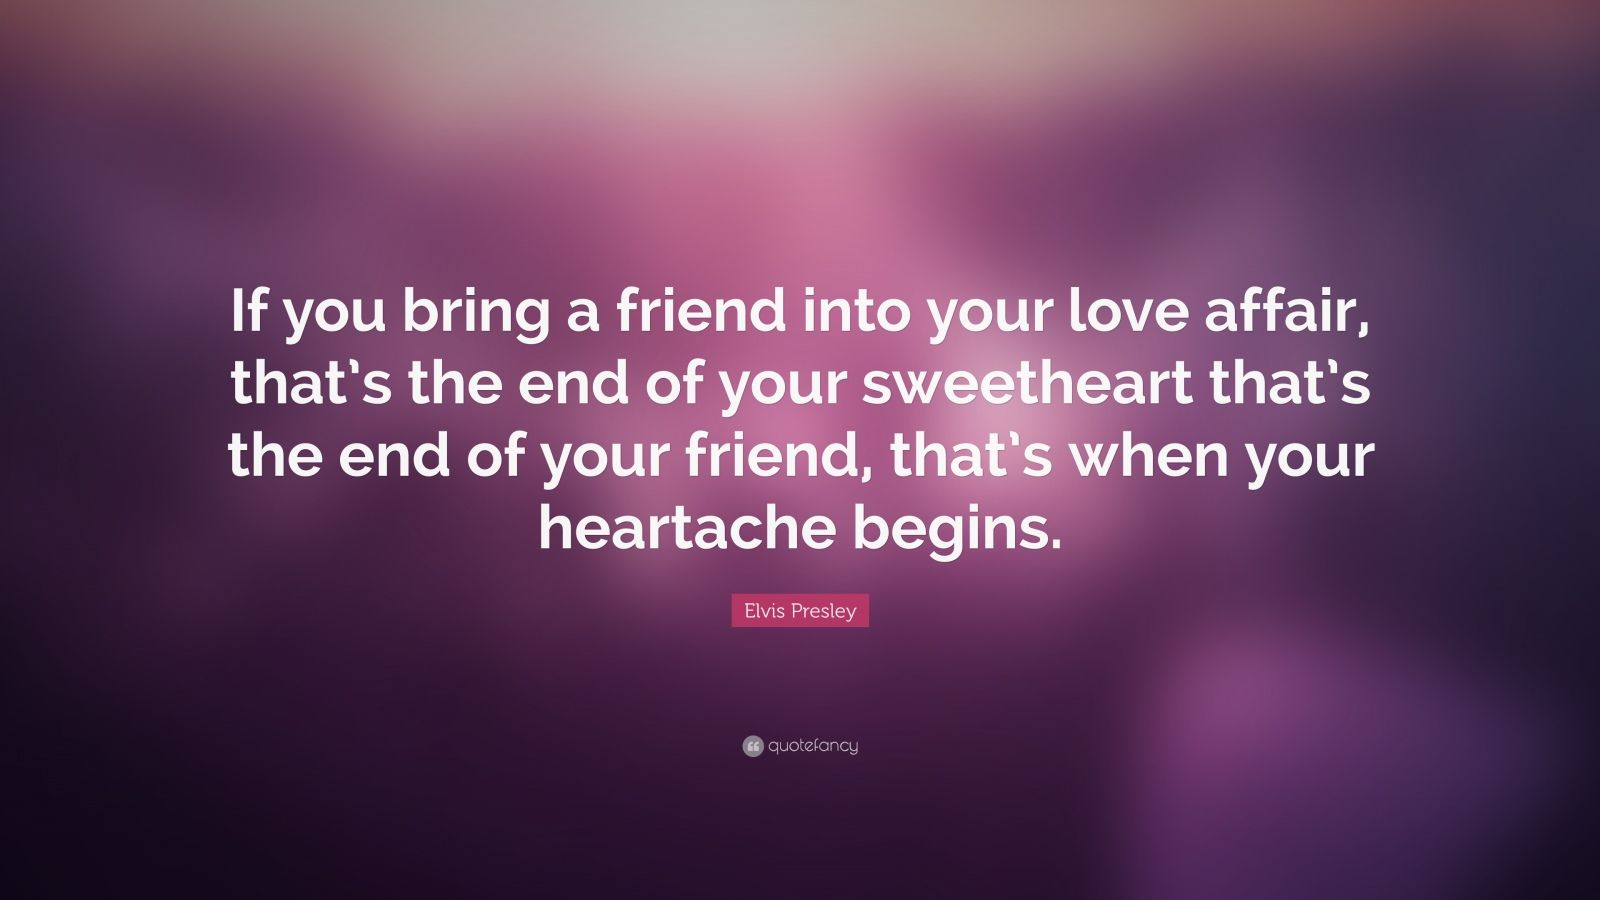 "Elvis Presley Quote: ""If you bring a friend into your love affair, that's the end of your sweetheart that's the end of your friend, that's when your heartache begins."""